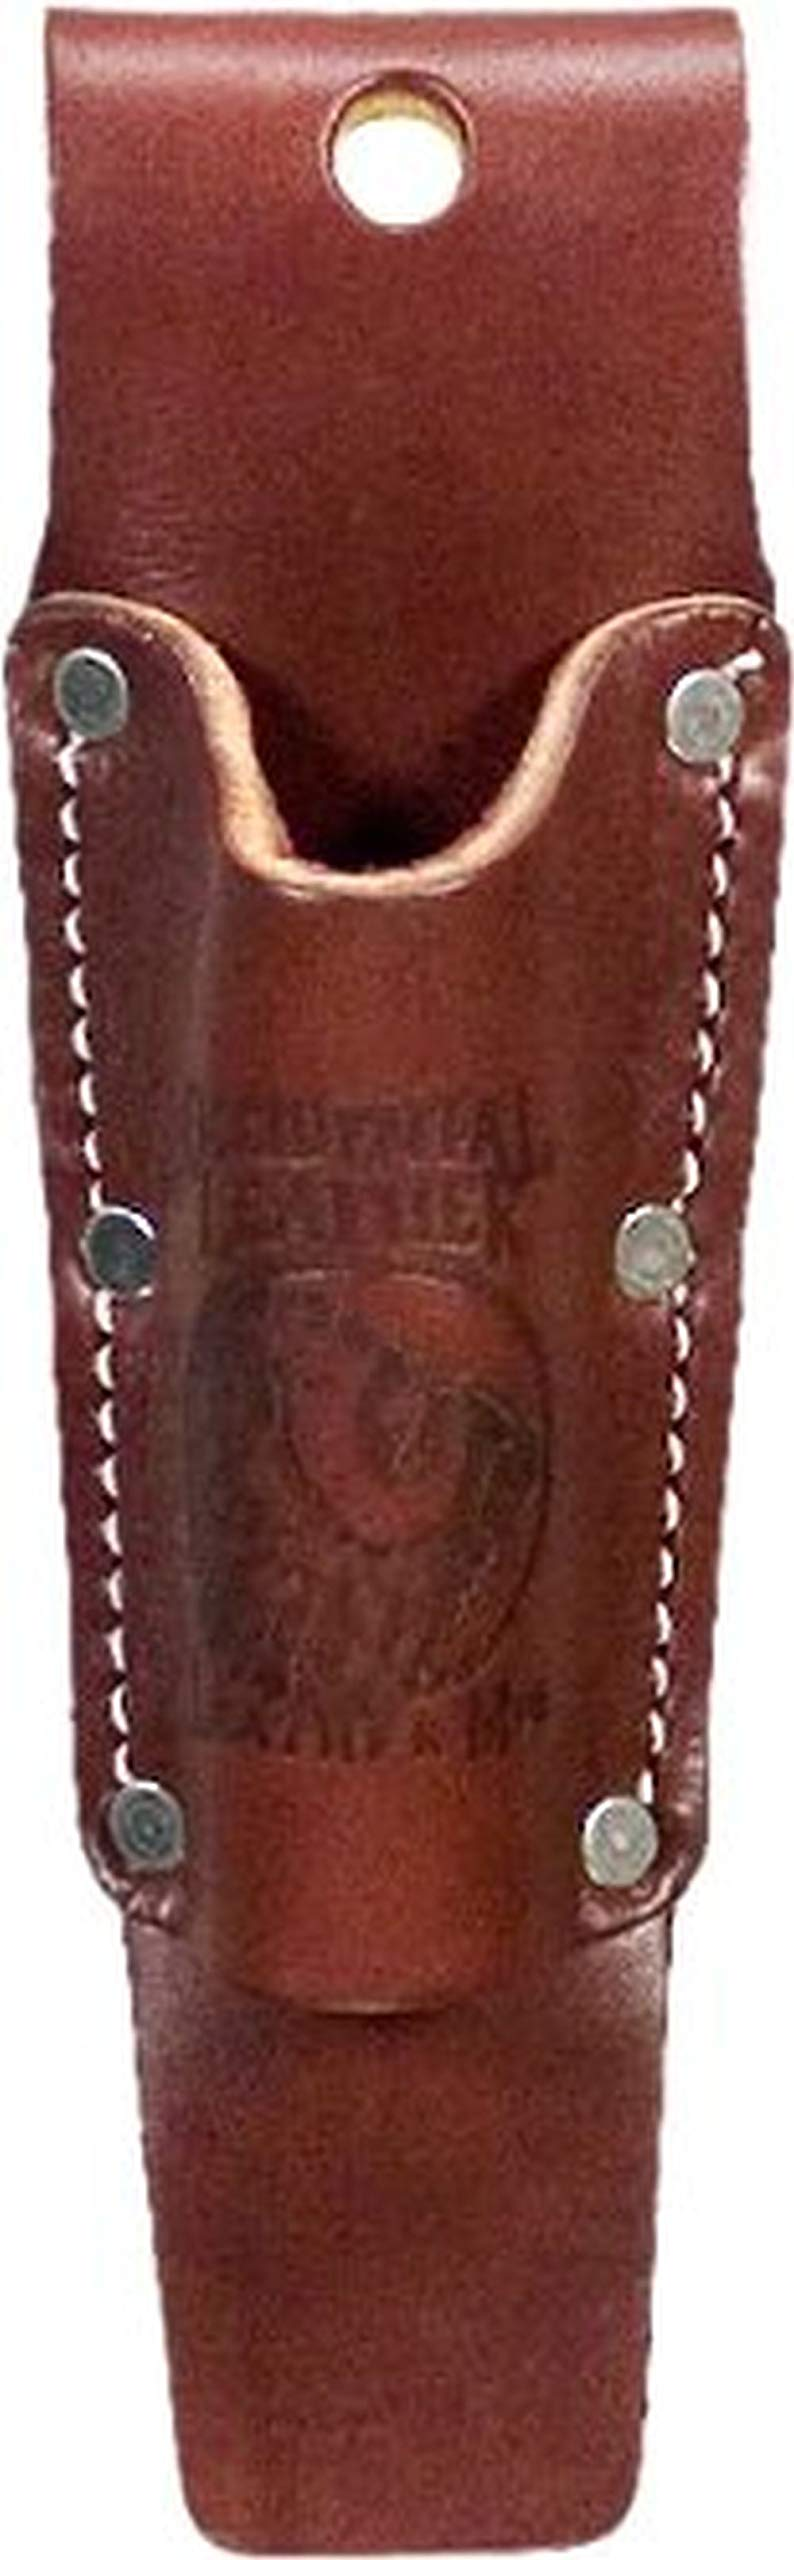 Occidental Leather 5032 Tapered Tool Holster by Occidental Leather